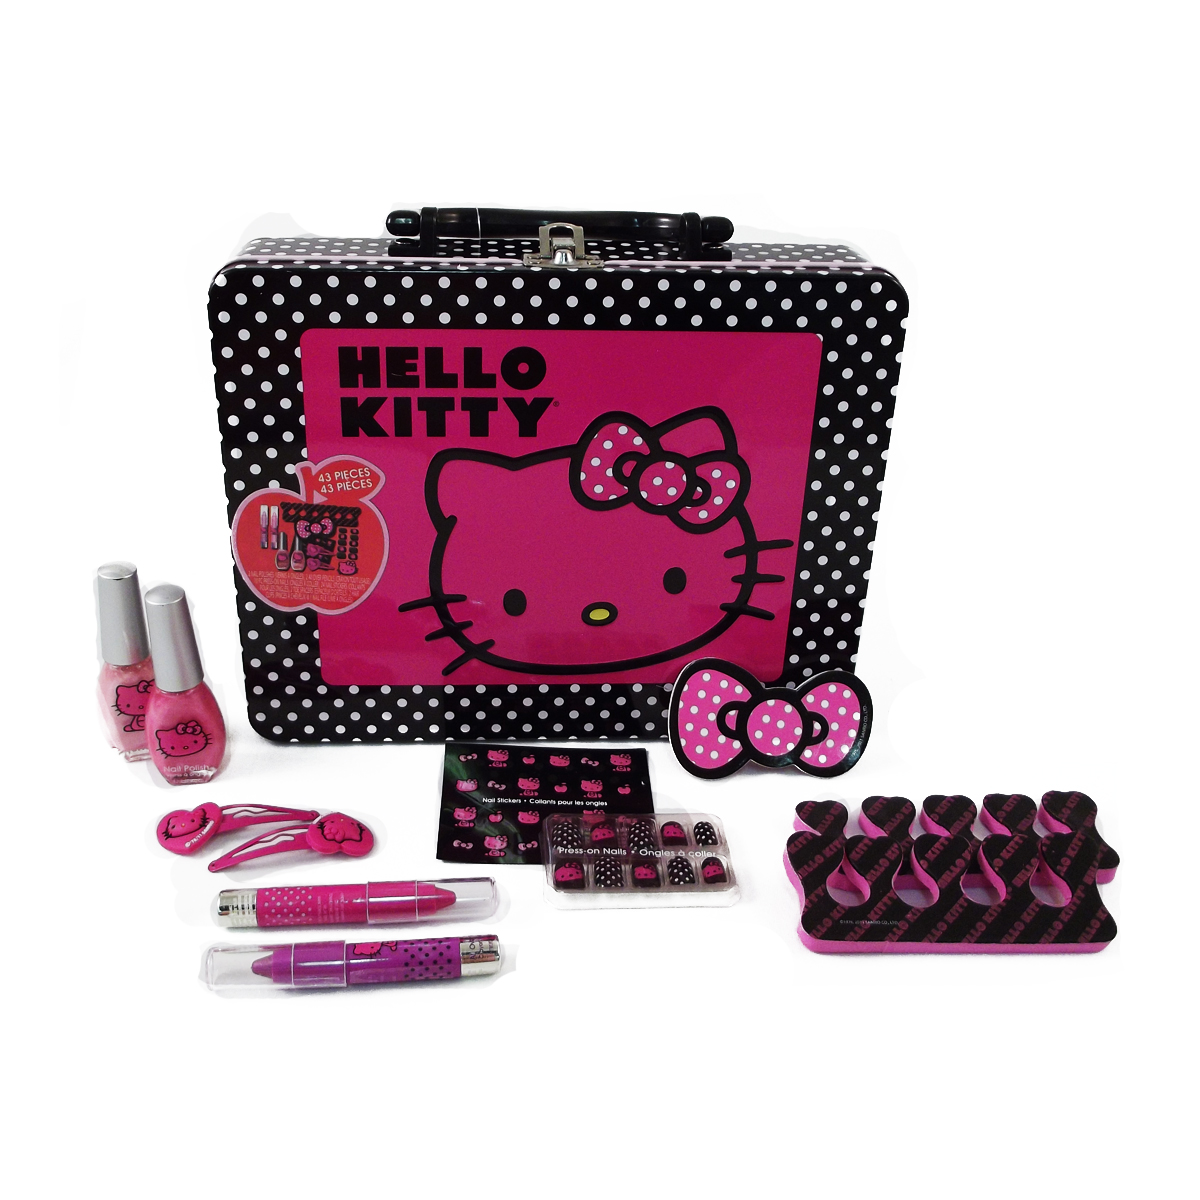 Sanrio Hello Kitty Tin Lunch Box Cosmetics Set 43 Pieces